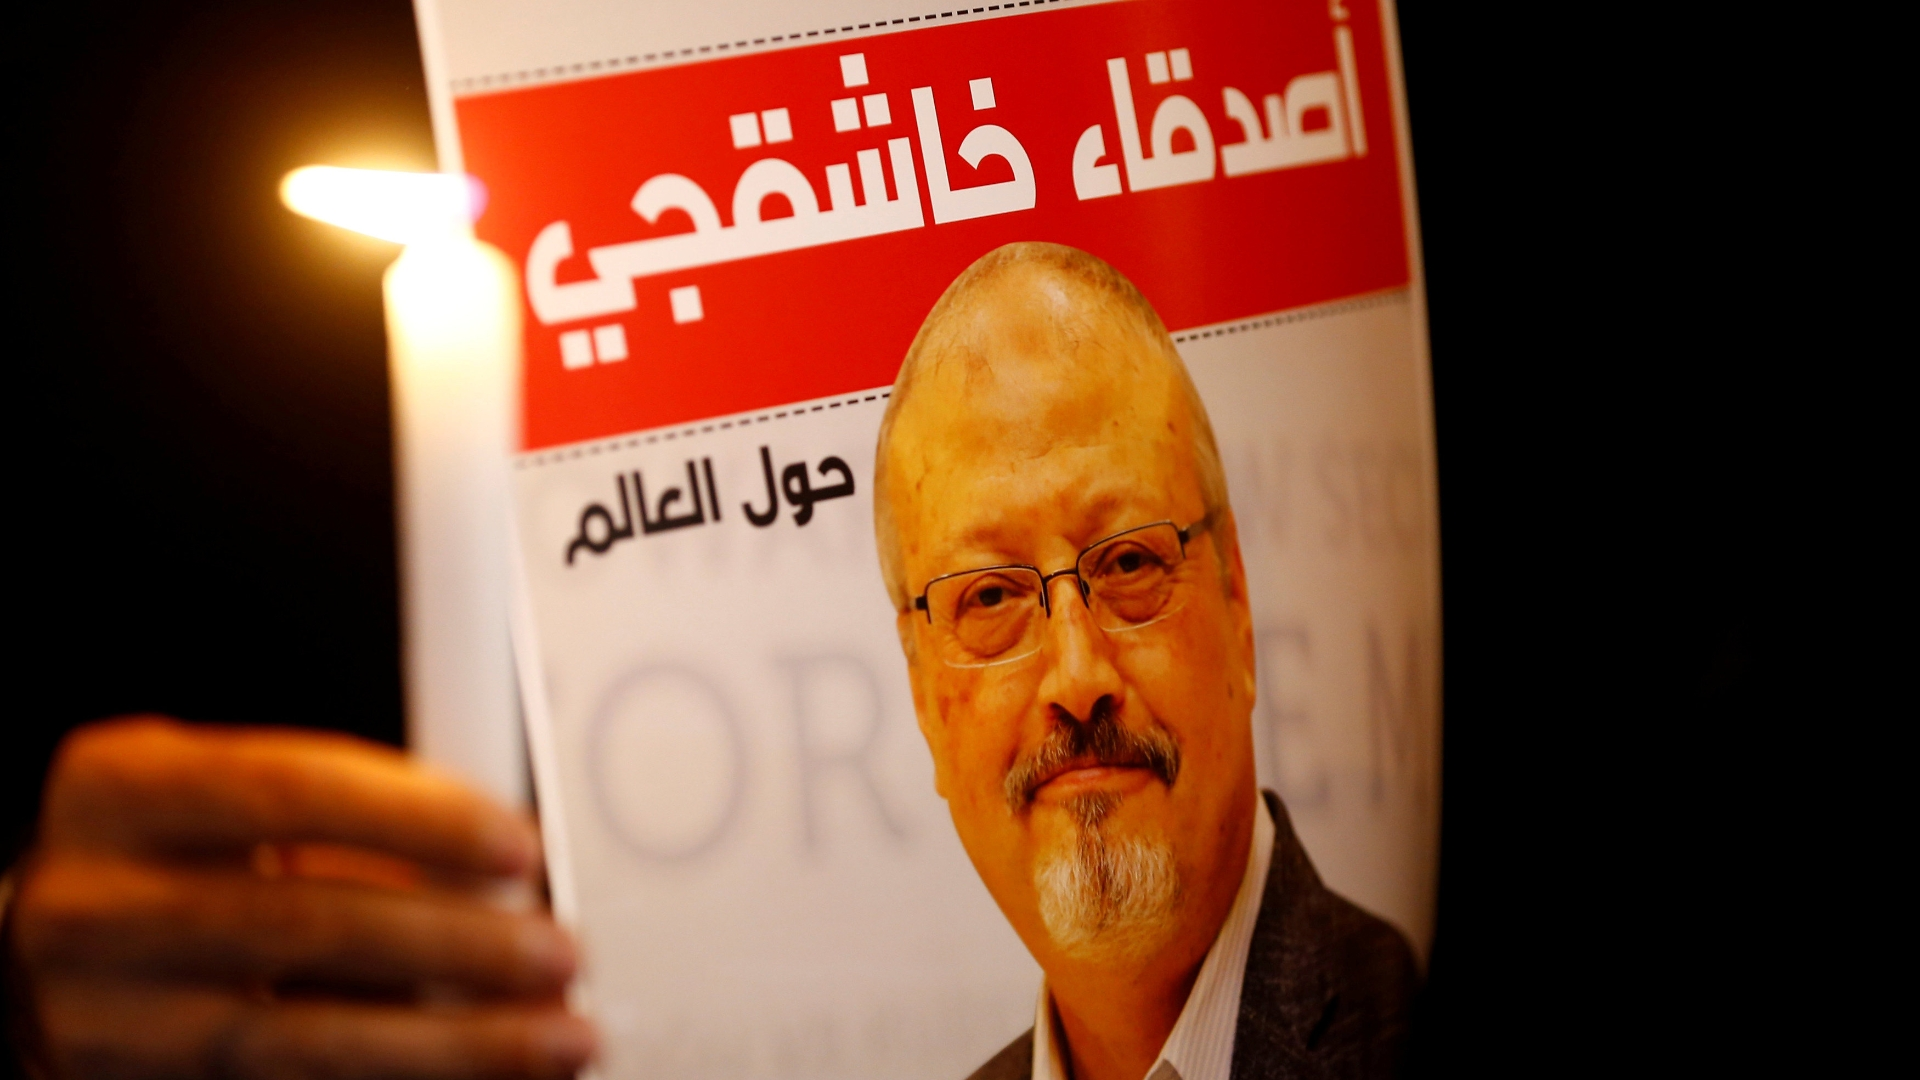 U.S. imposes sanctions on 17 Saudis allegedly involved in the killing of journalist